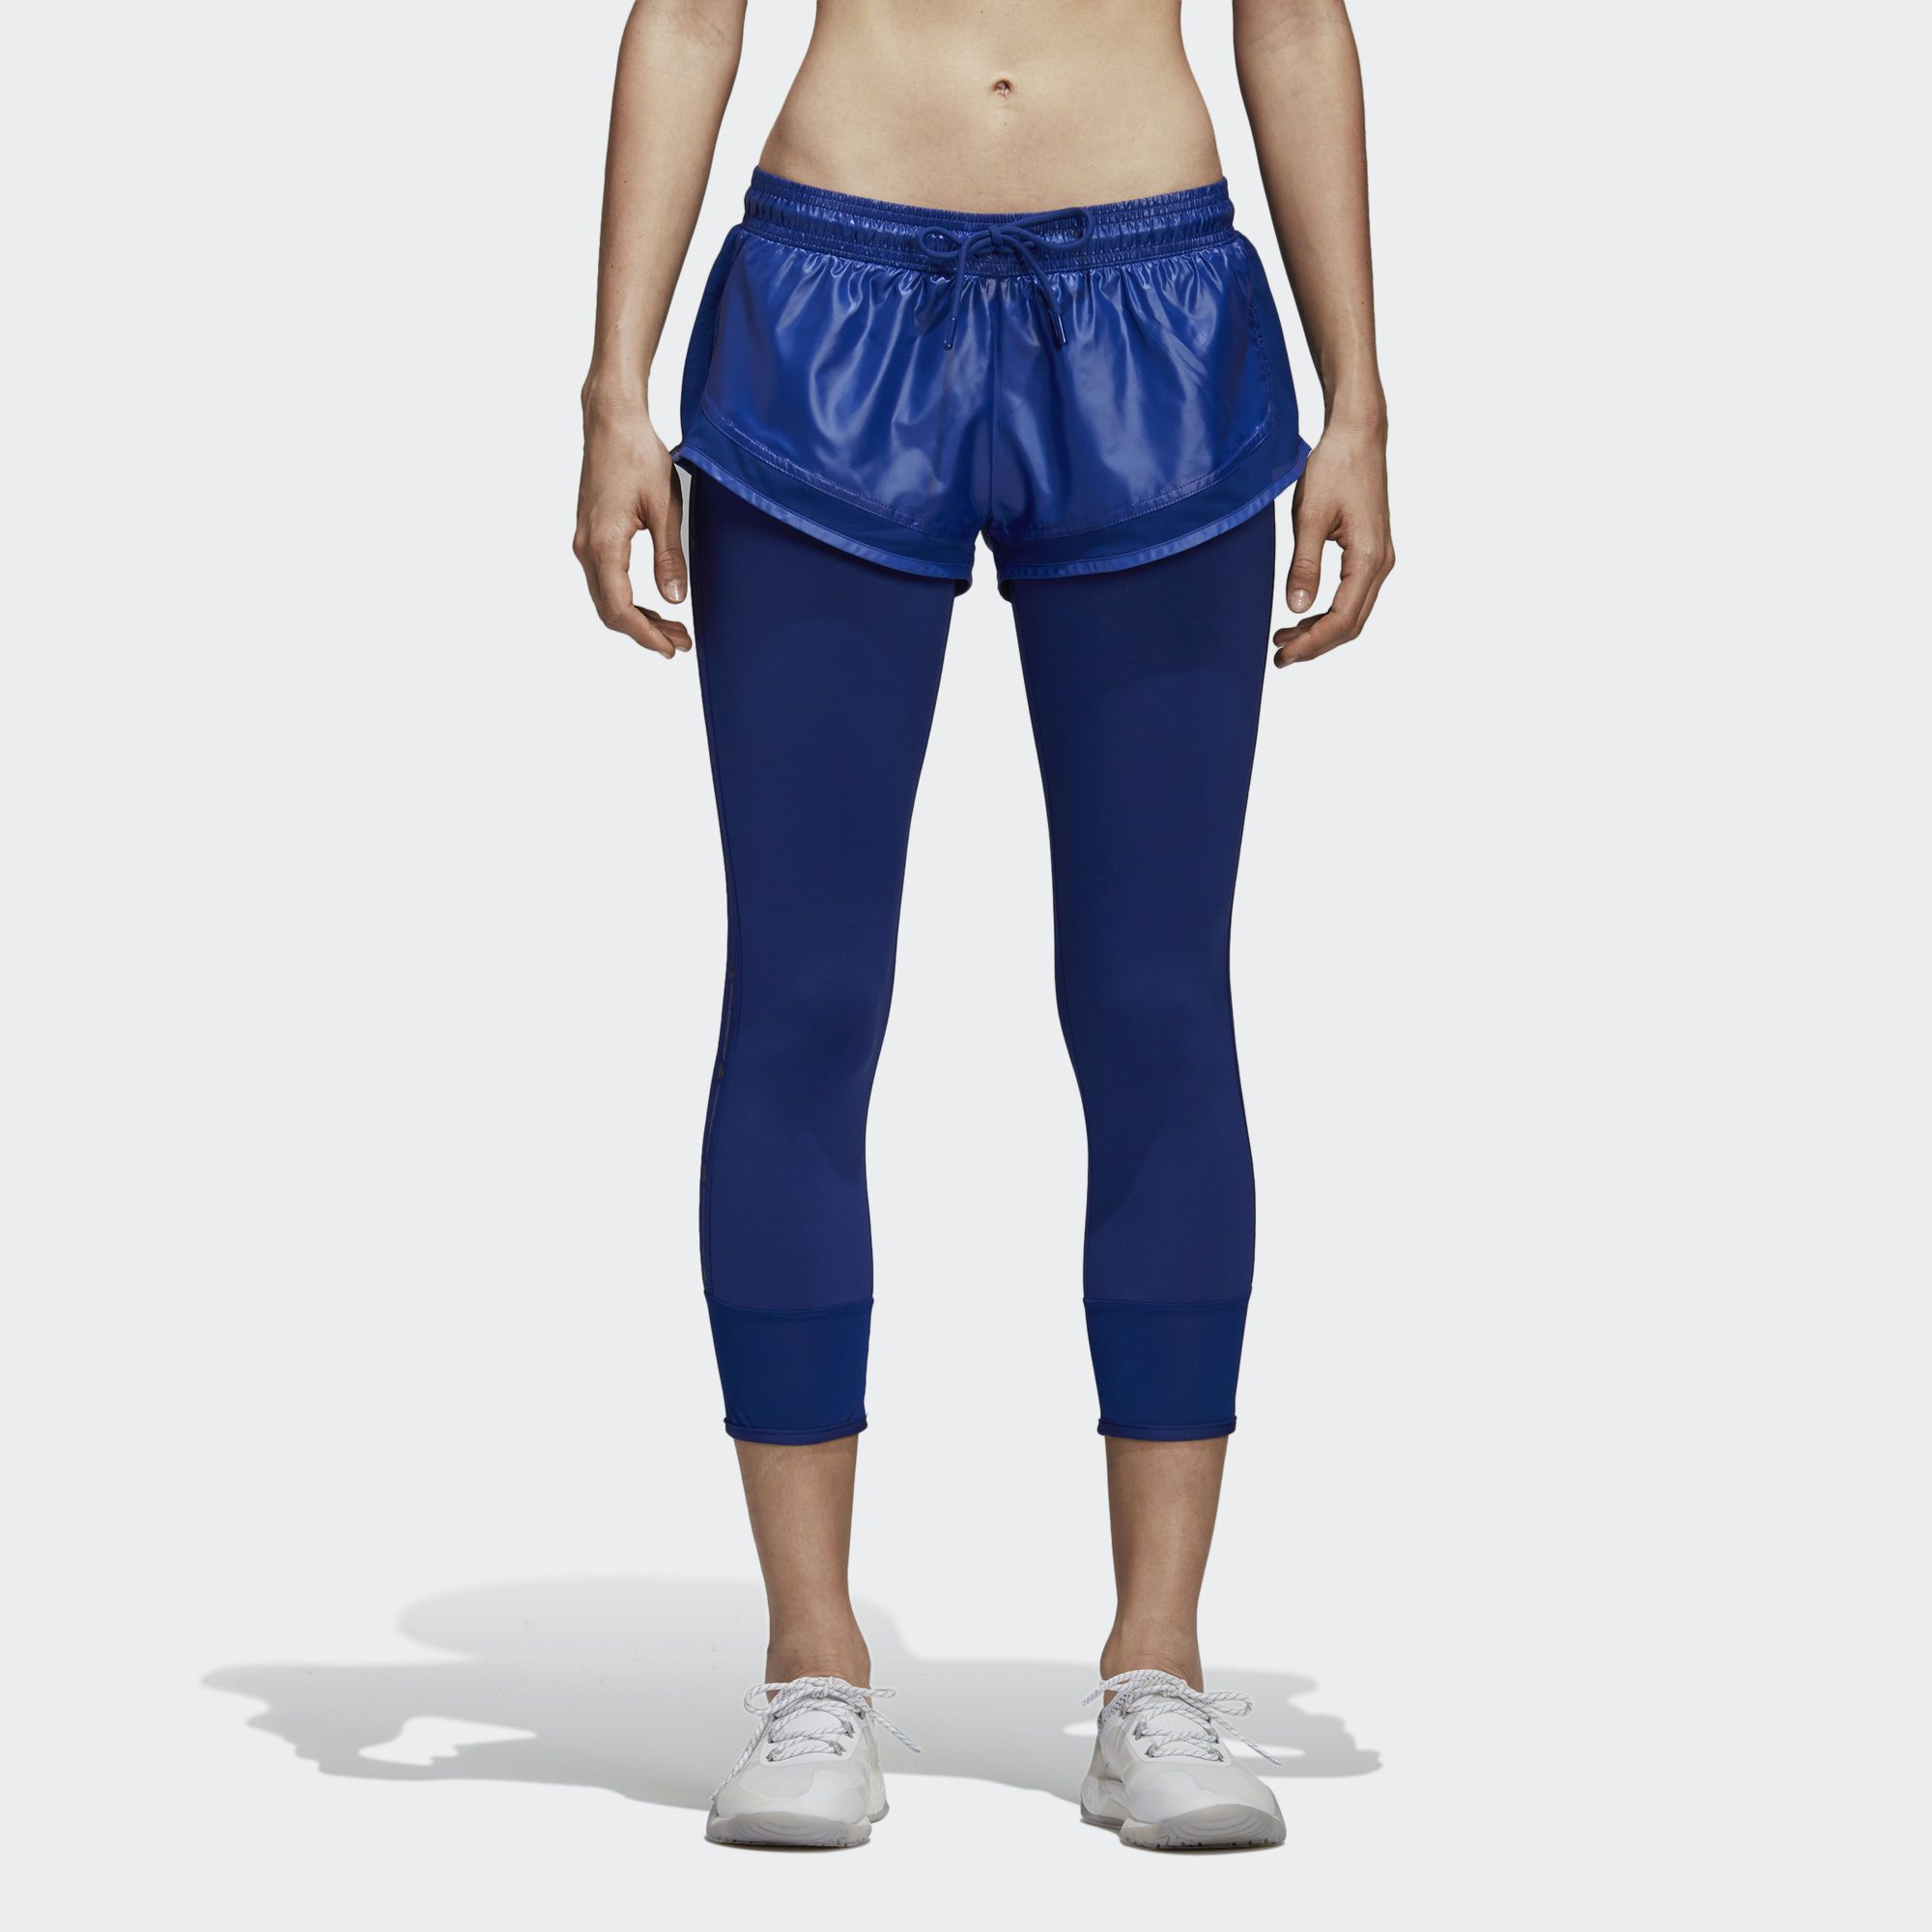 1741c06ef8fa03 The adidas by Stella McCartney Performance Essentials Shorts Over Tights  have built-in leggings for extra coverage during your workout.